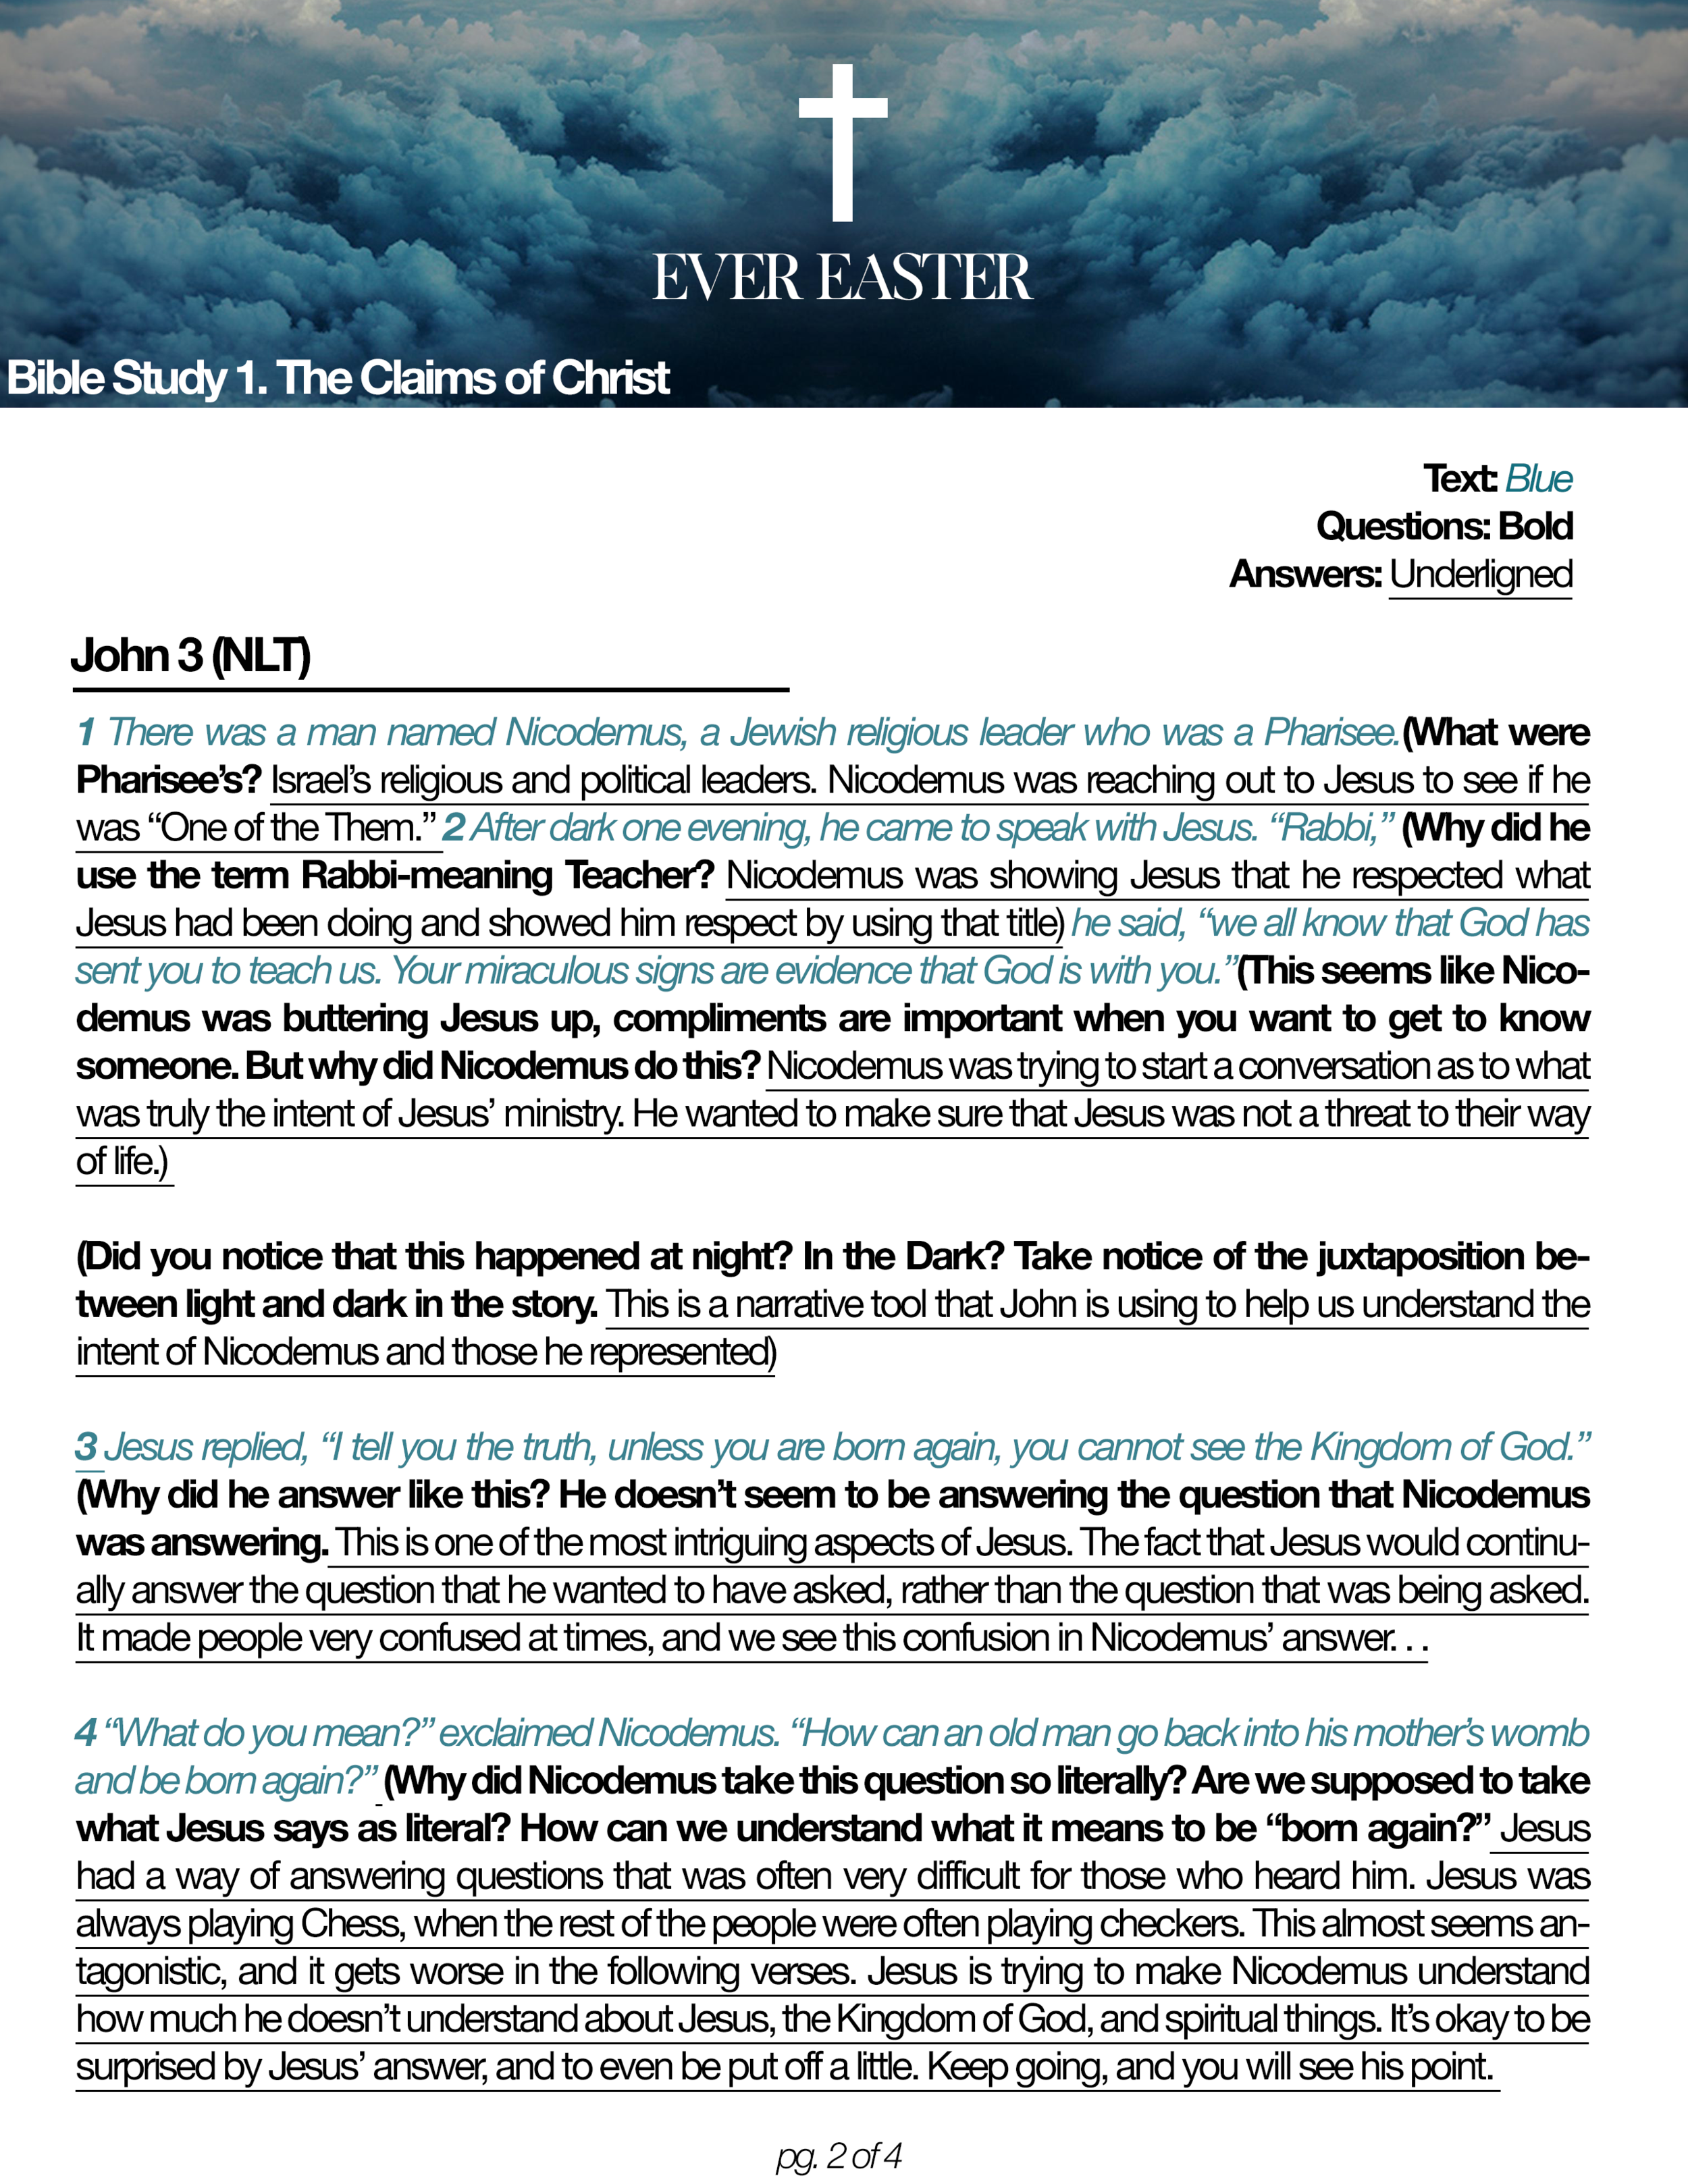 Easter Bible Study 1 (pg2).png